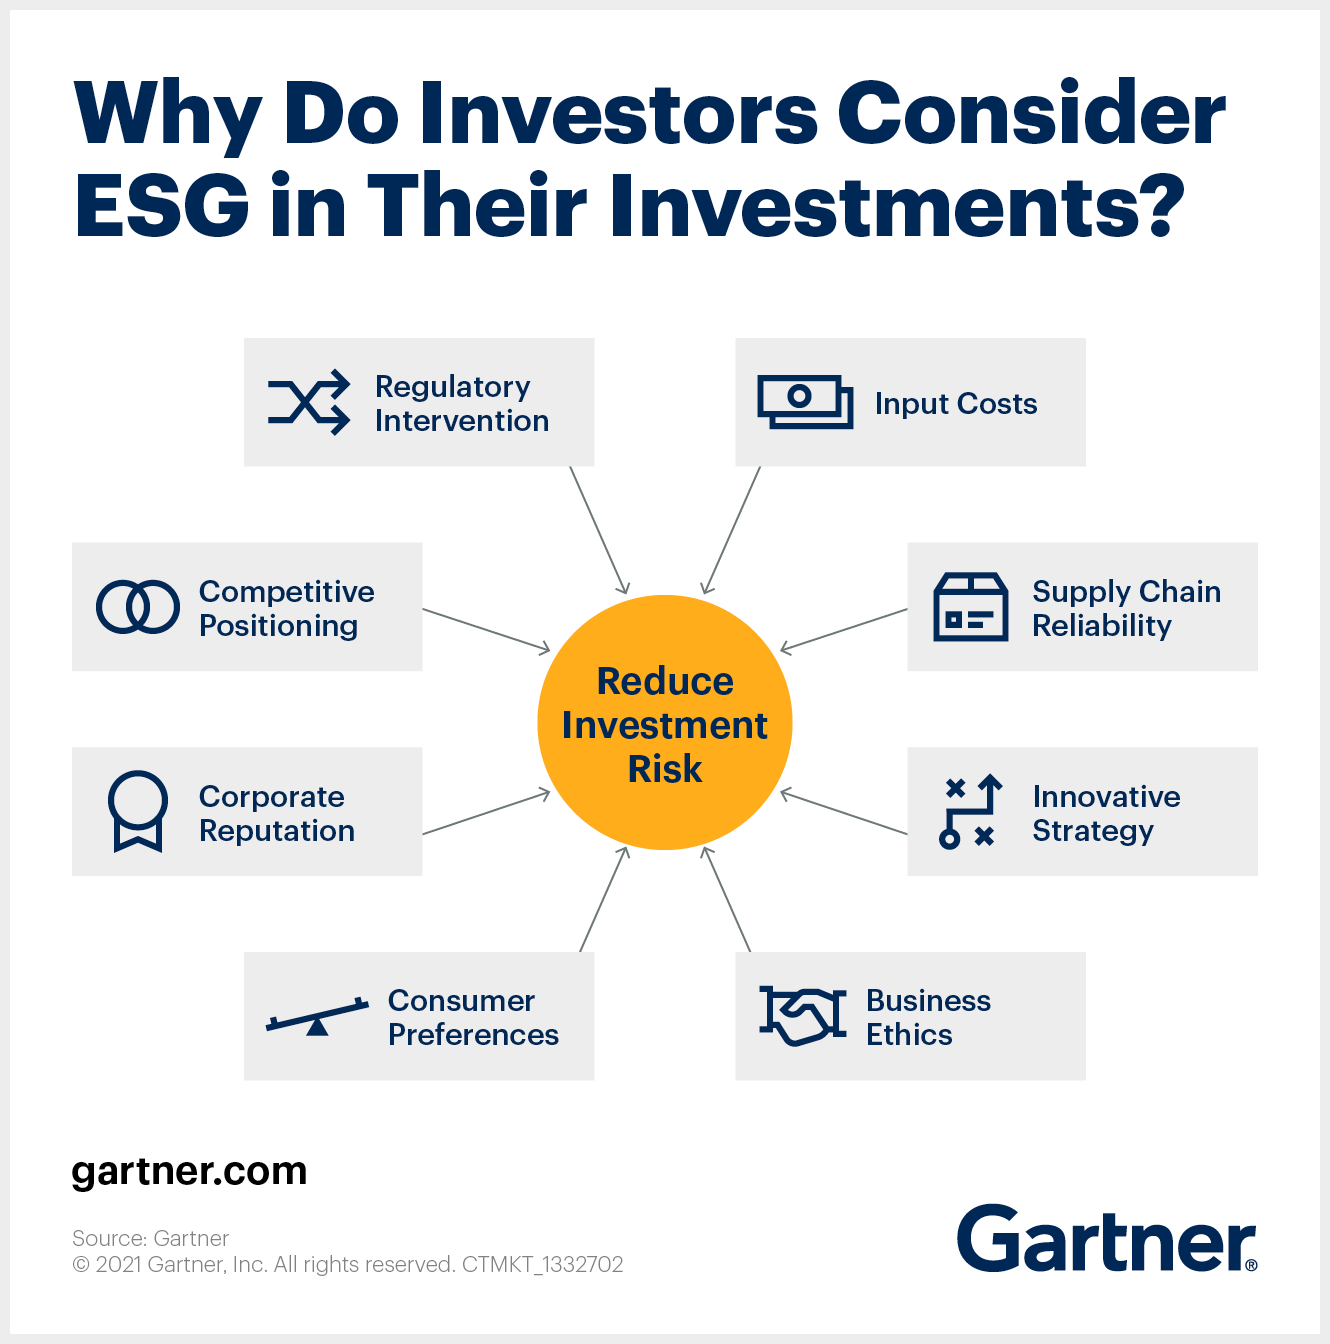 Why Do Investors Consider ESG Finance in Their Investments